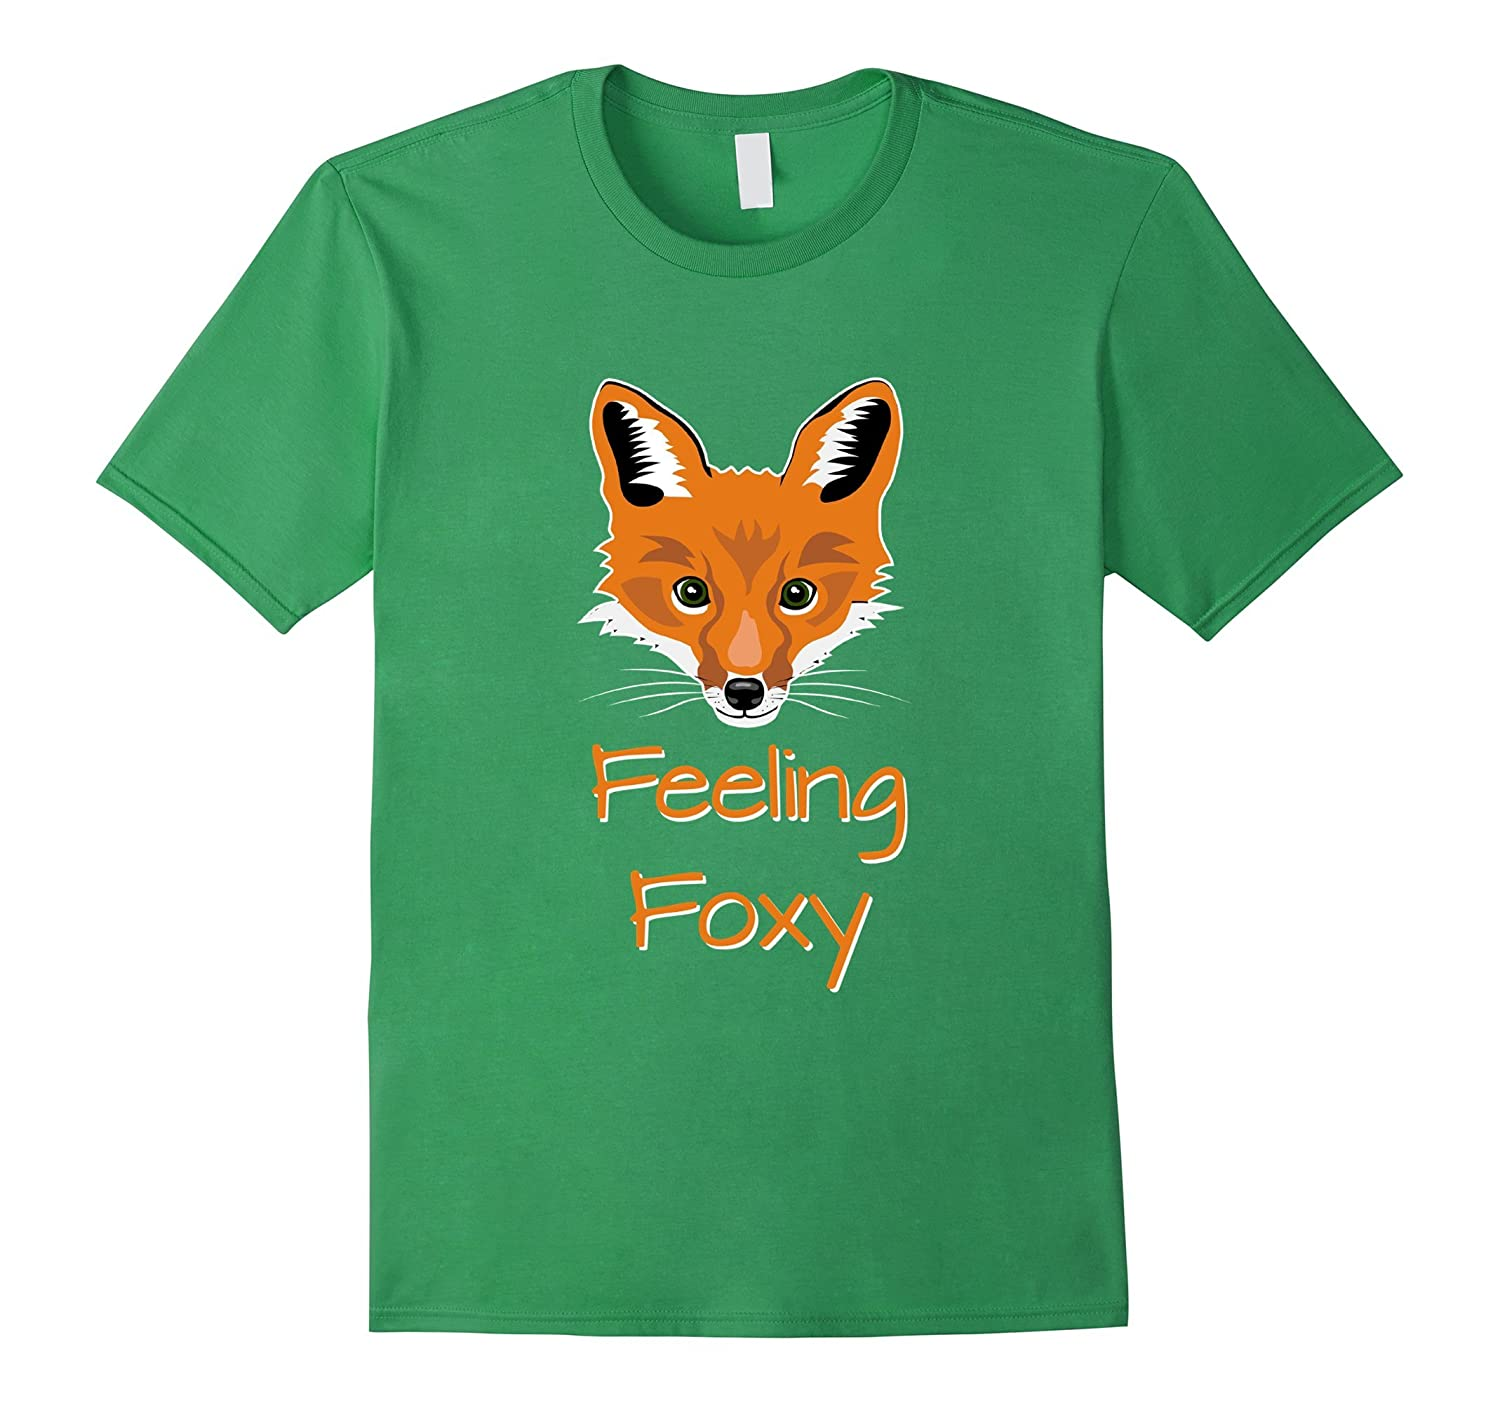 Feeling Foxy Tshirt-CL